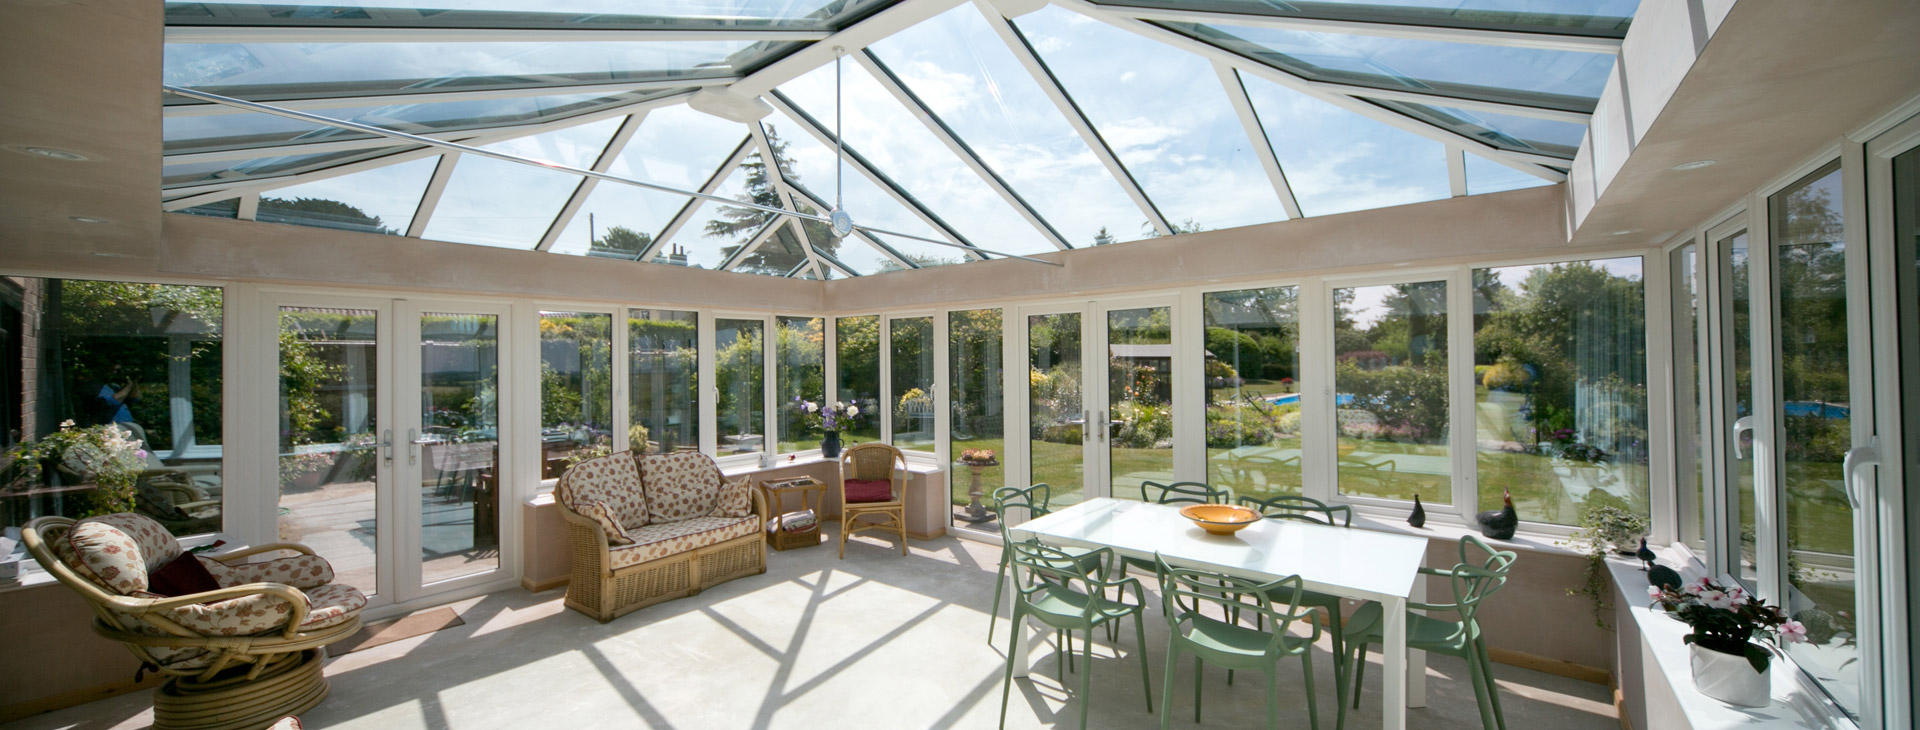 conservatories5-1920x730